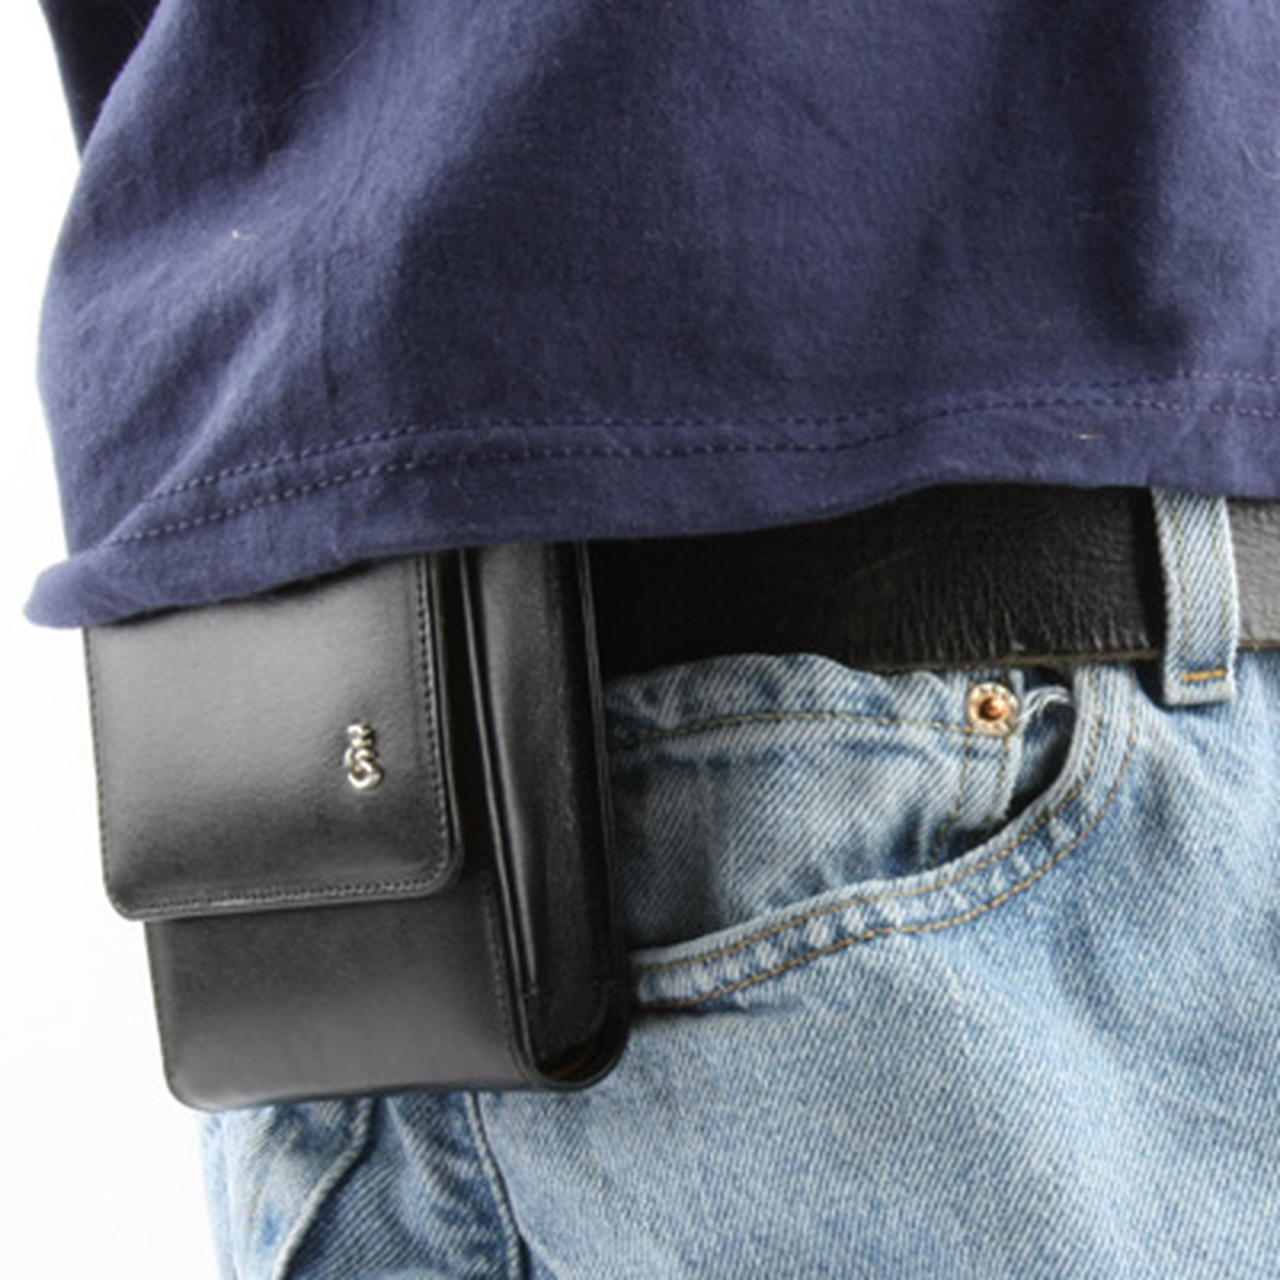 Double Tap Sneaky Pete Holster (Belt Clip)